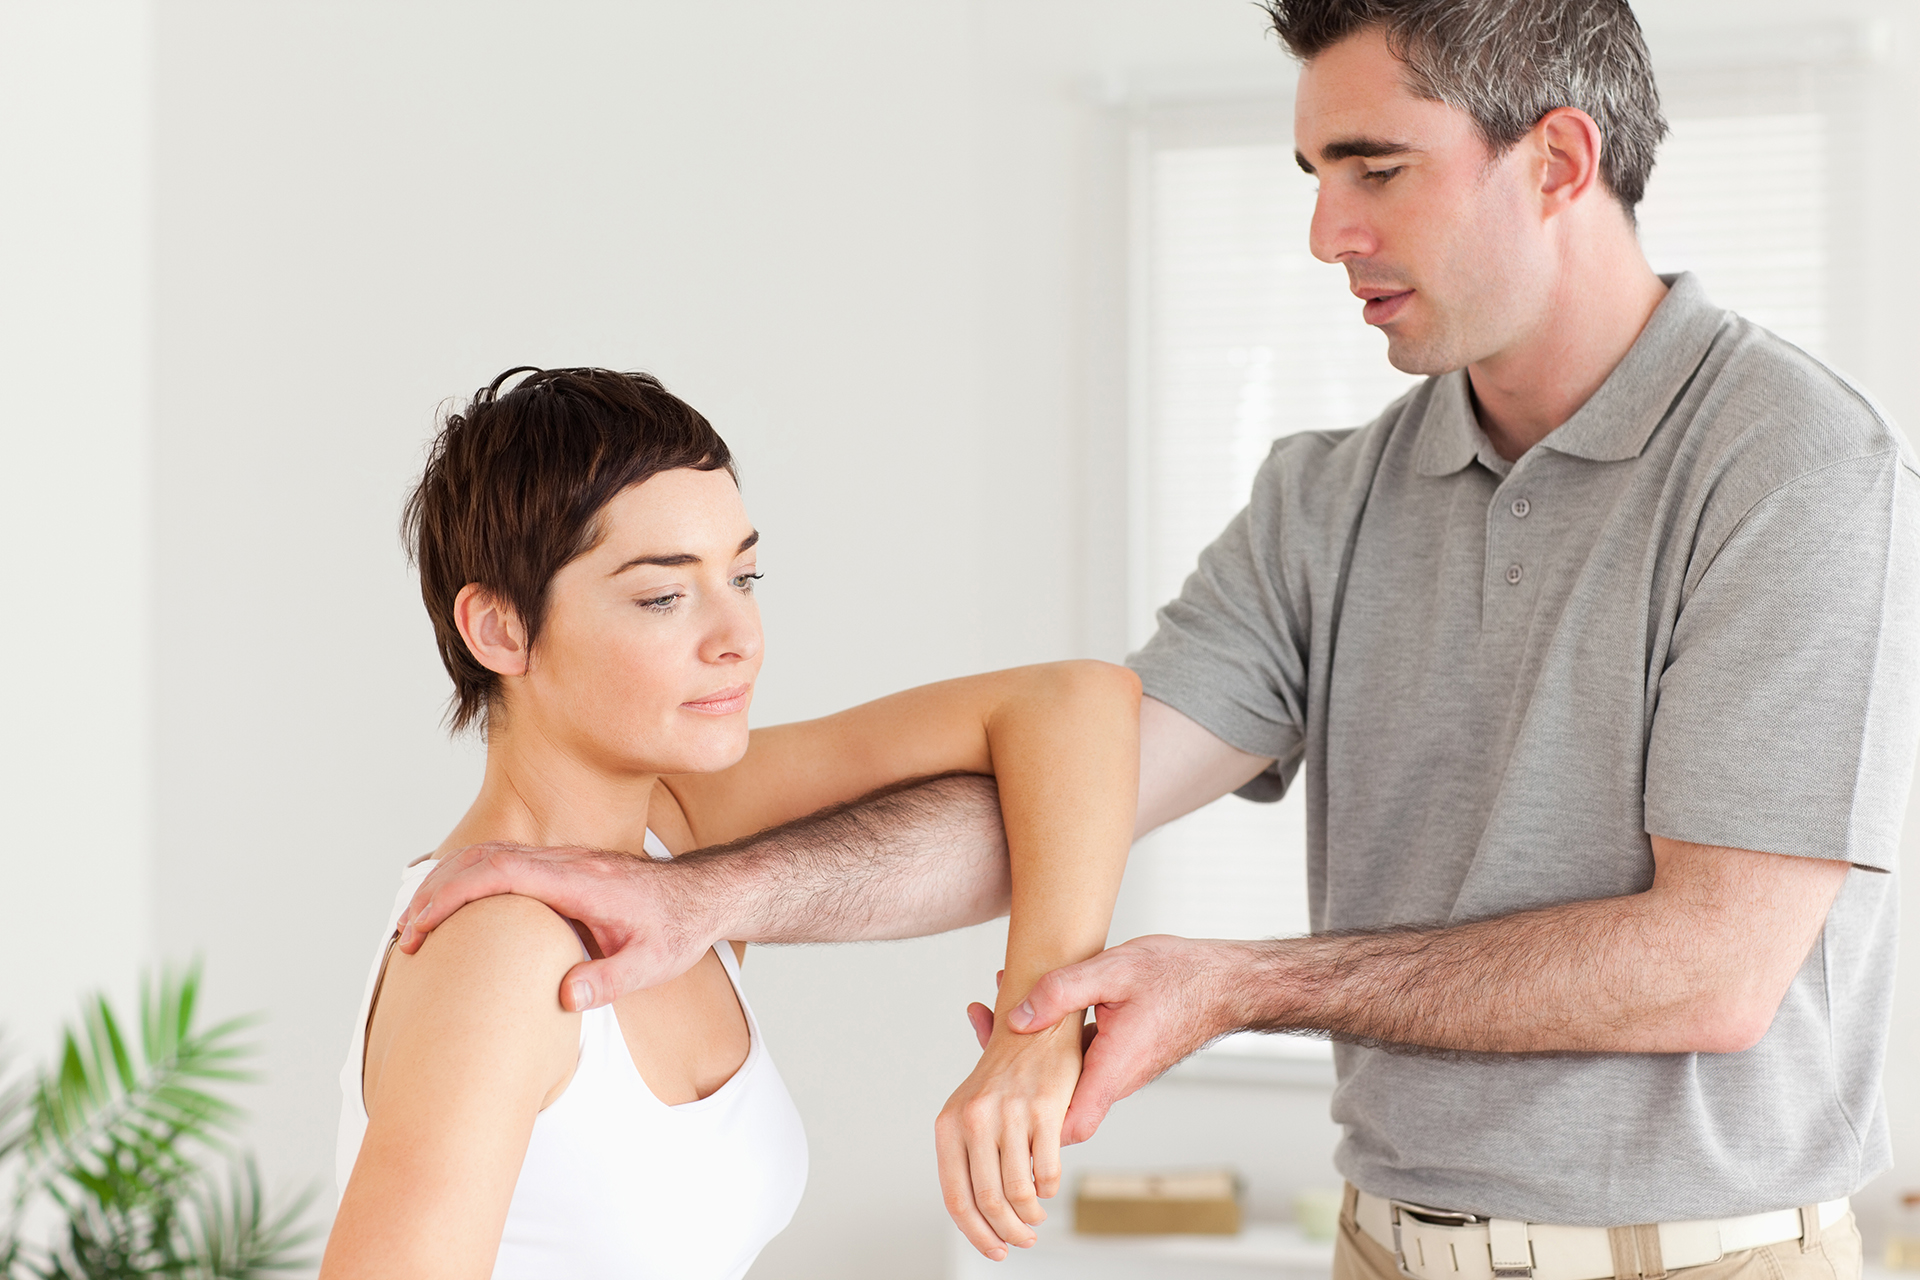 Chiropractor and Physical Therapy